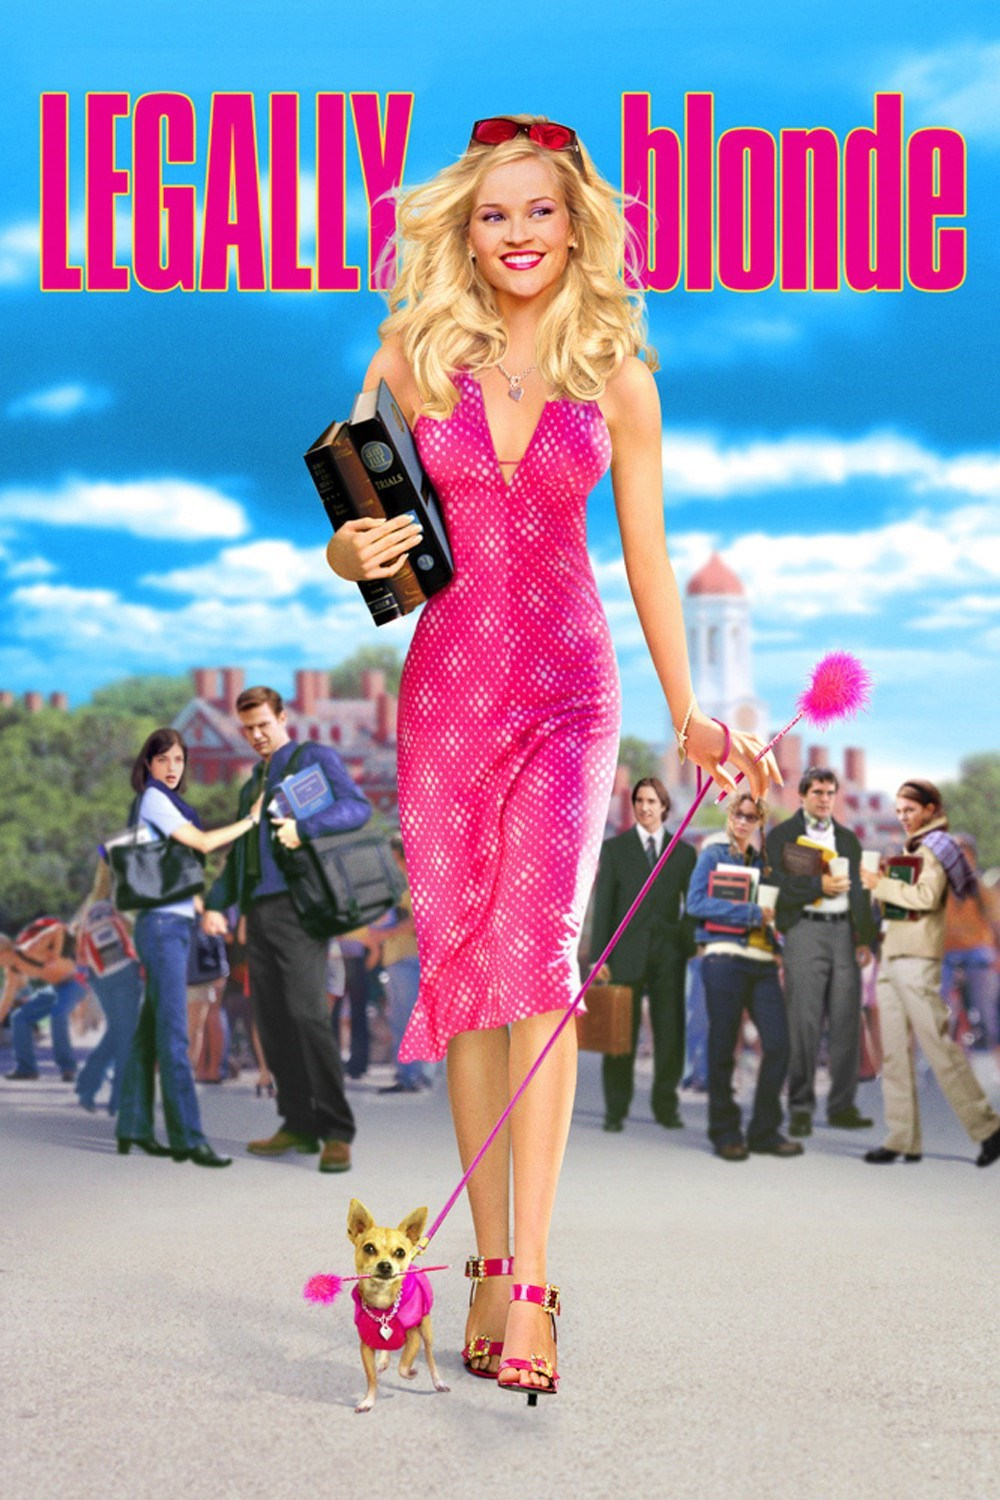 Watch Legally Blonde (2001) Full Movie Free Online on Tubi ...